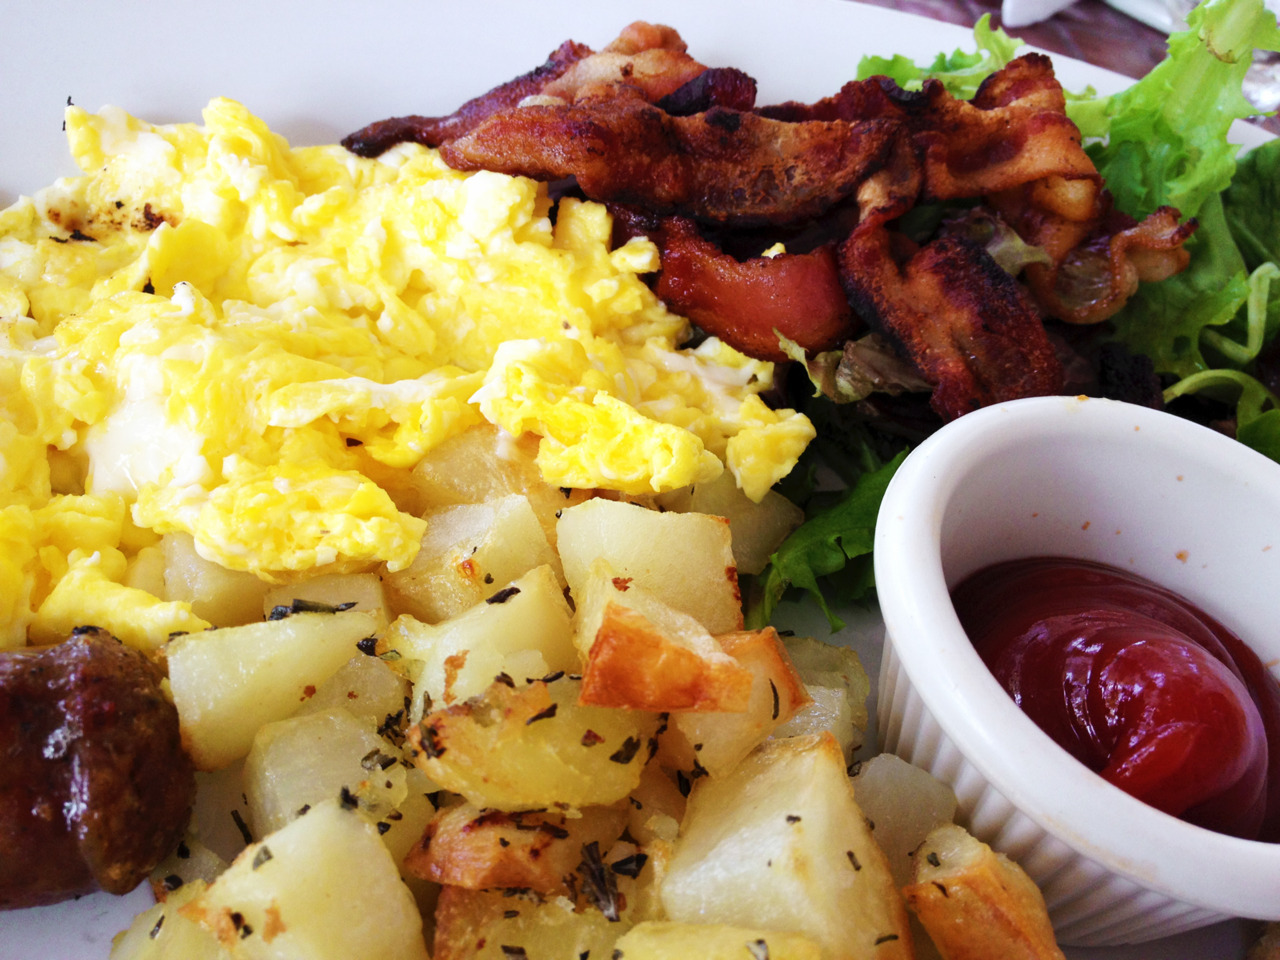 Man's brunch: eggs, sausage, and bacon! From Nido. -Gastrodamus